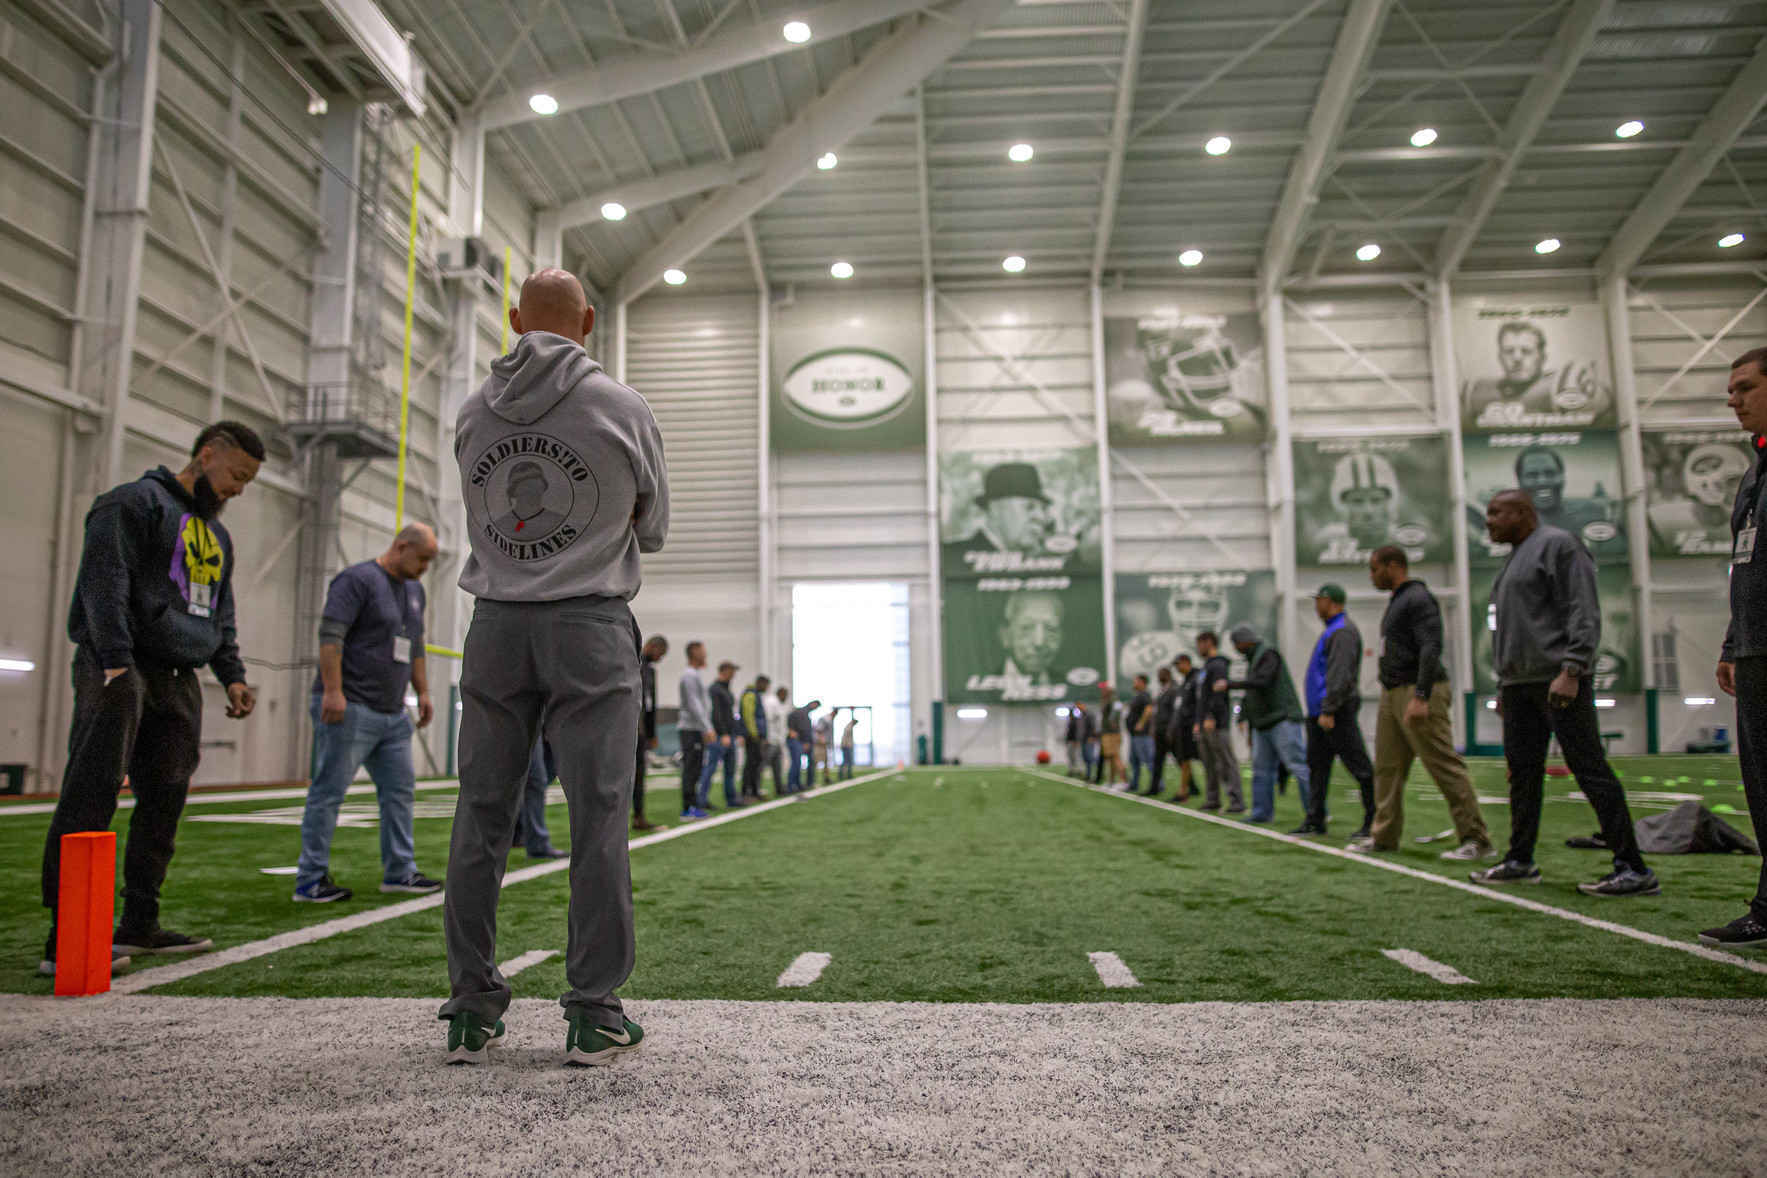 Soldiers To Sidelines New York Jets Football Coaching Certification Seminar image